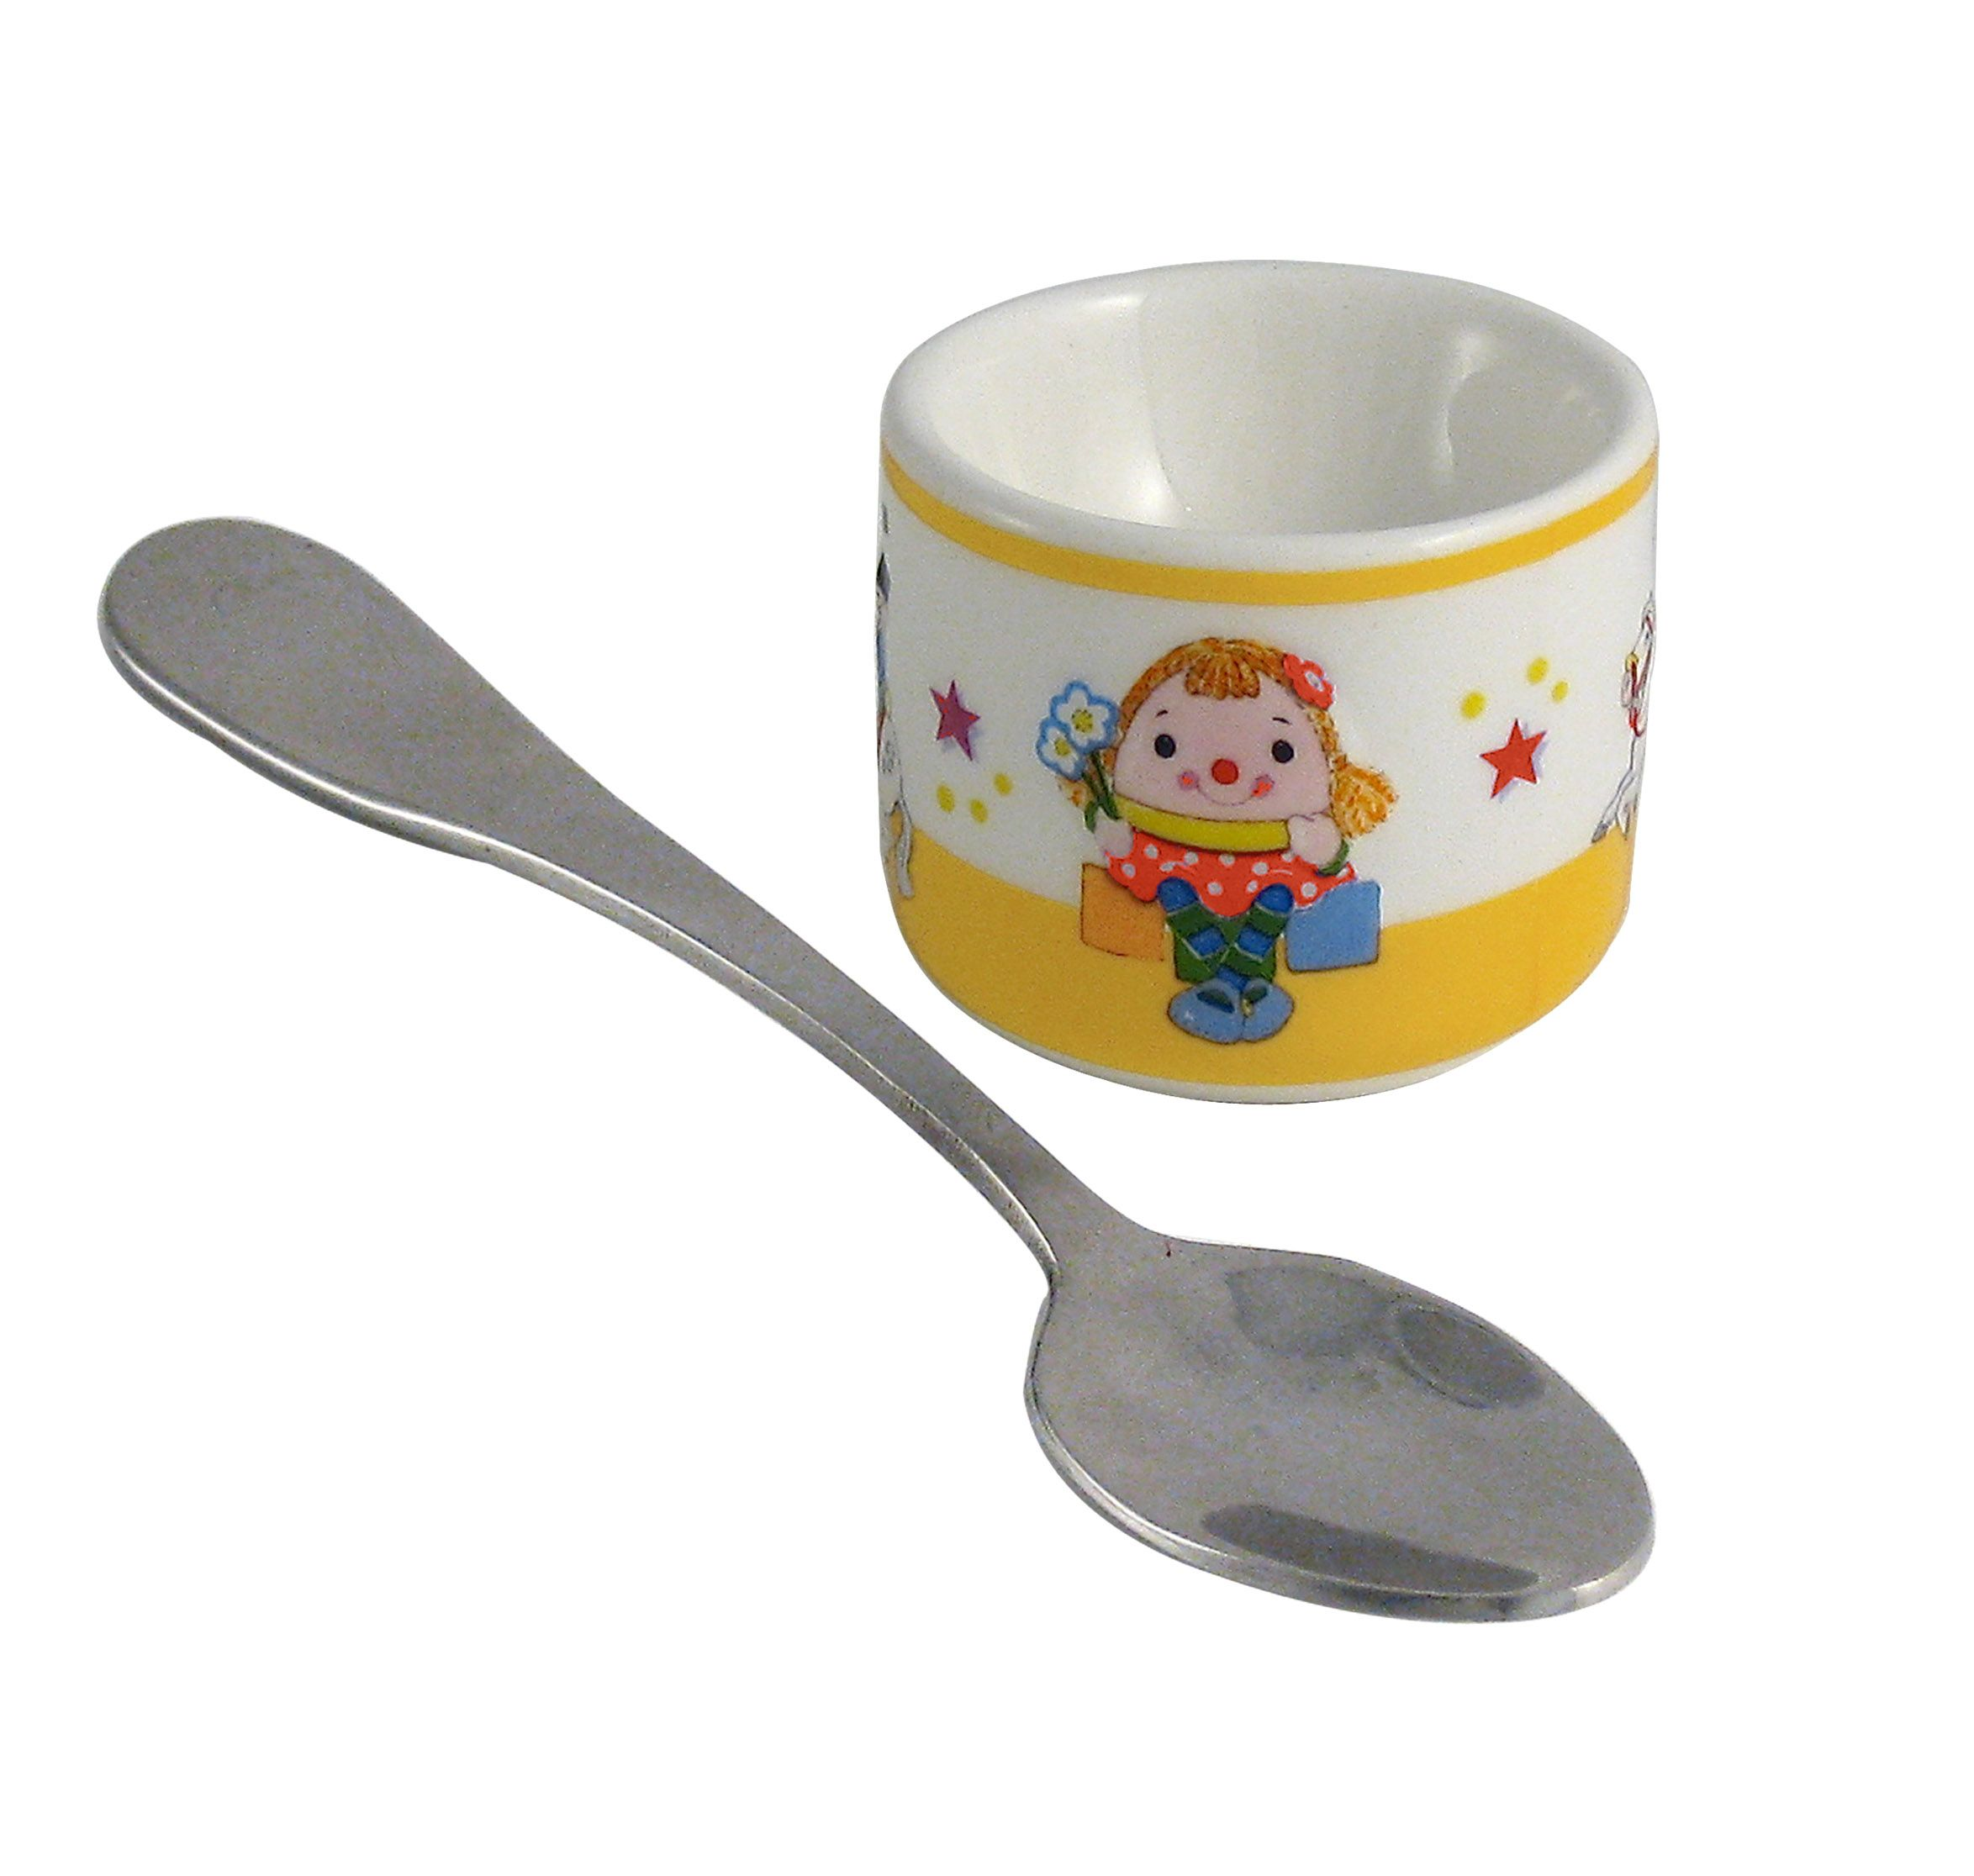 Aynsley Aynsley Miss Humpty eggcup and spoon